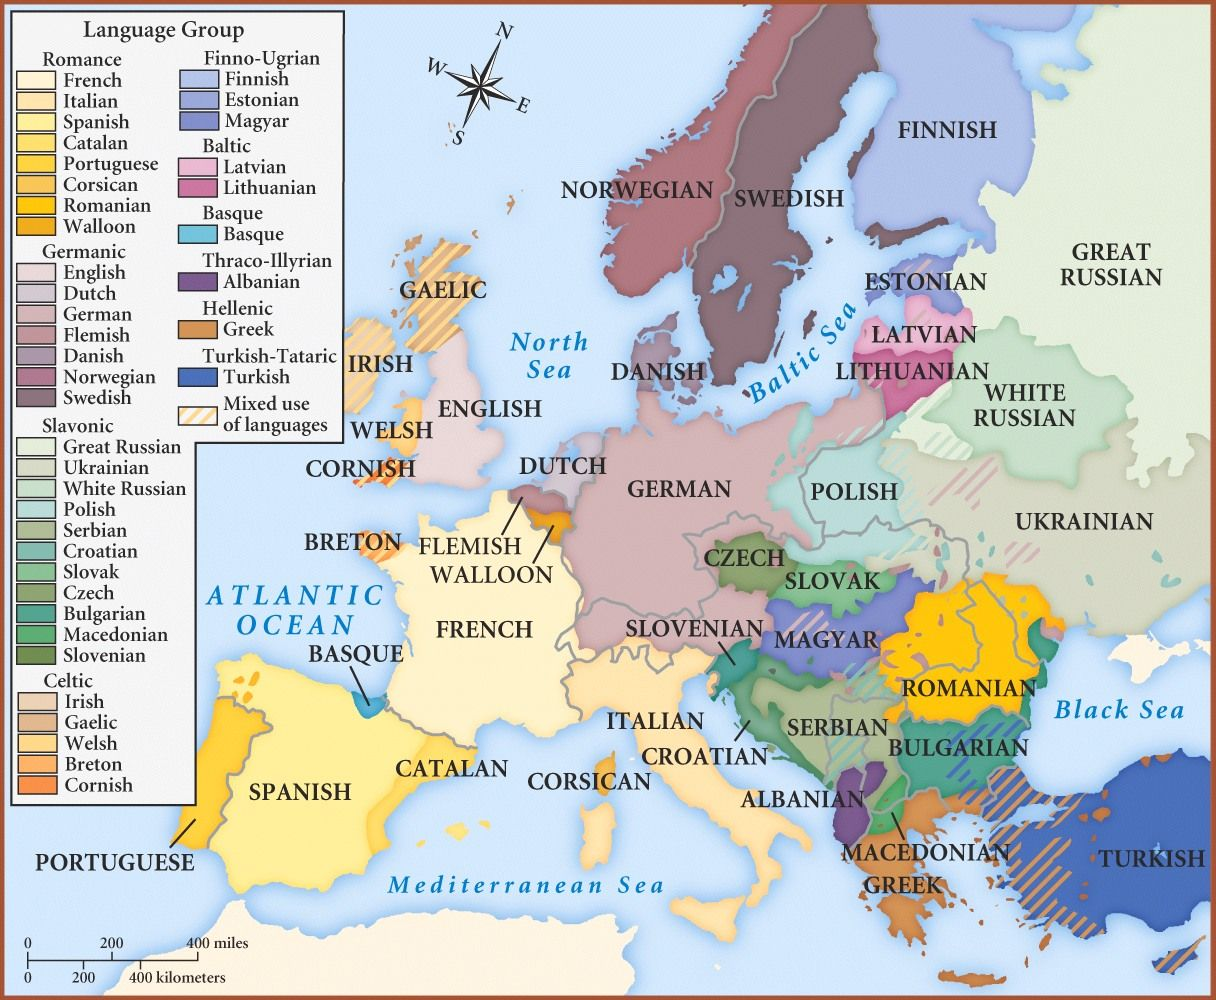 europe map | Europe language groups in 1815 - Full size ... on aboriginal australian languages map, ethnic group map, world language families map, european language map,